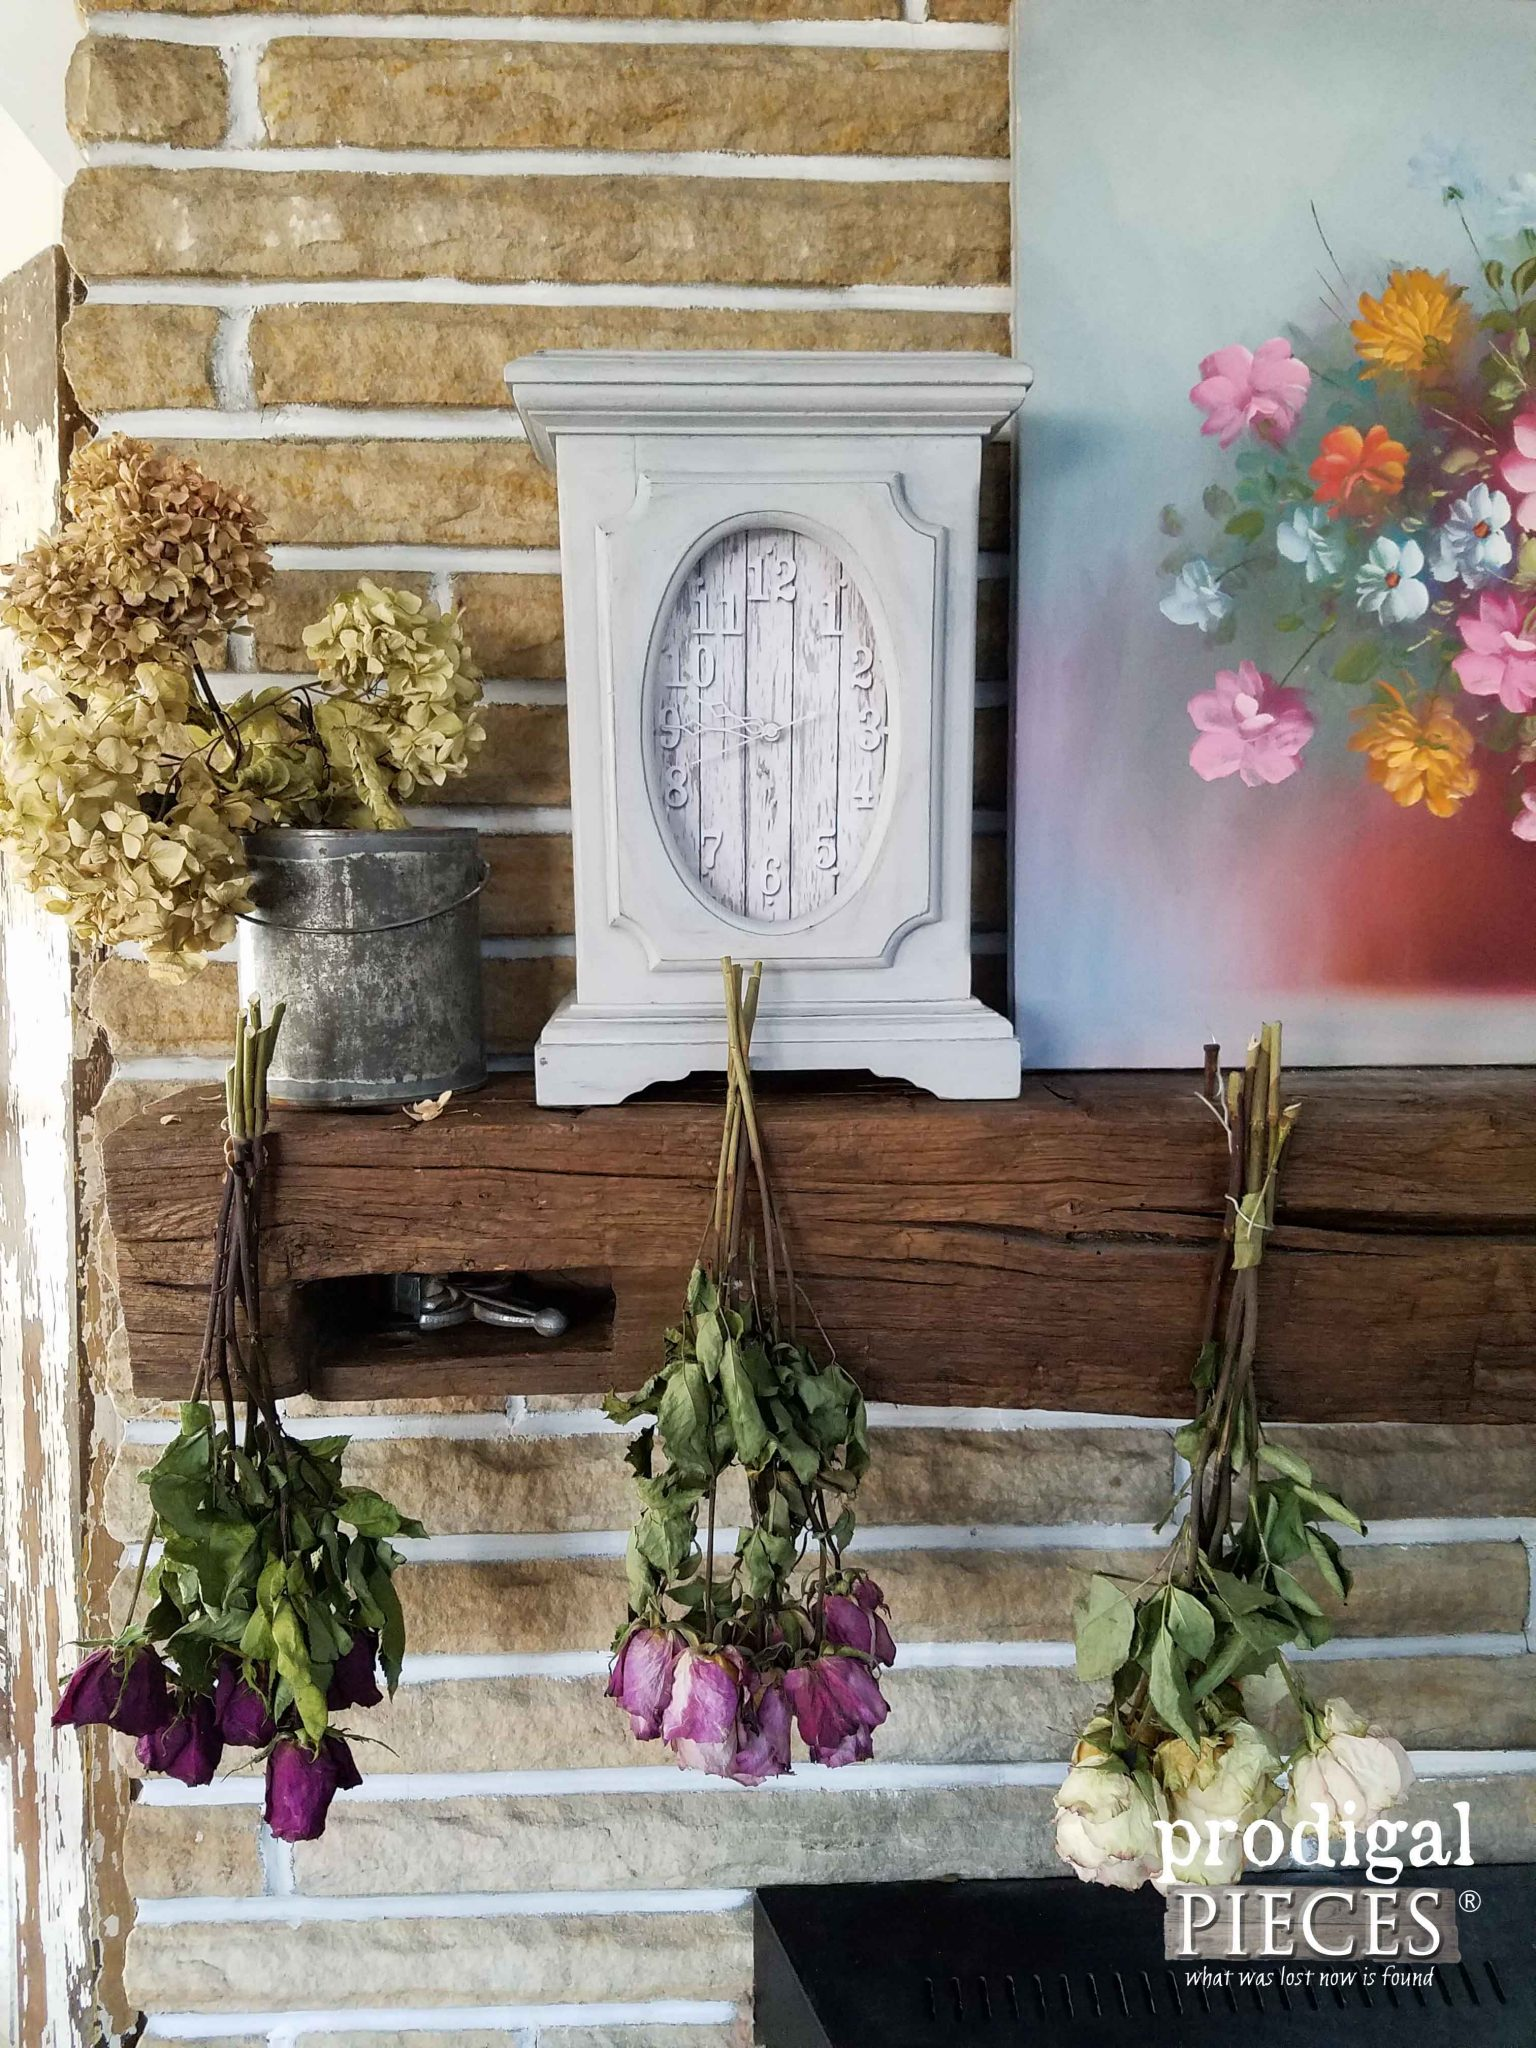 Farmhouse Style Mantel Clock from Thrifted Find by Prodigal Pieces | prodigalpieces.com